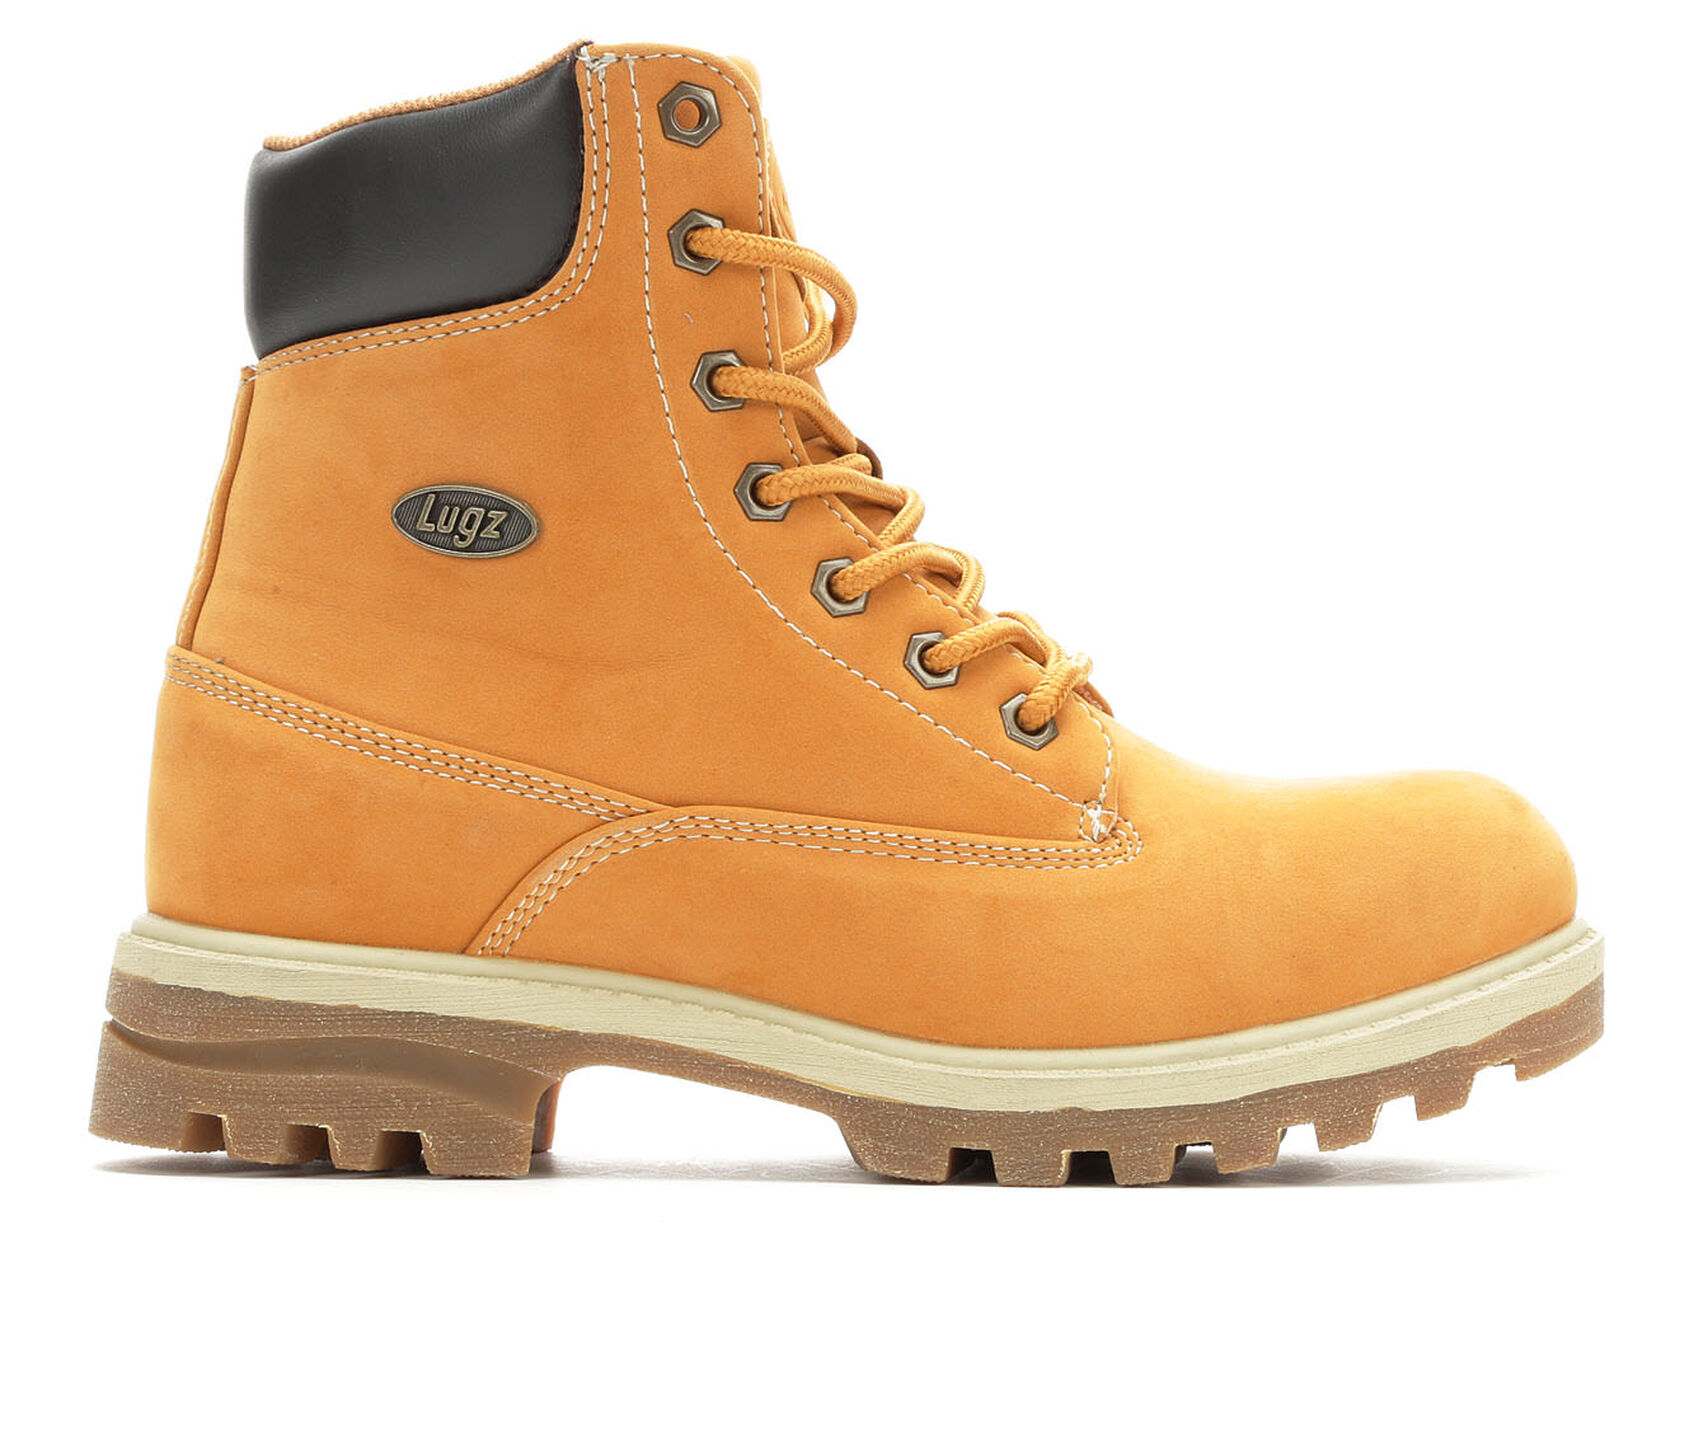 a69e33f0786dc Women s Lugz Empire Hi Water Resistant Hiking Boots